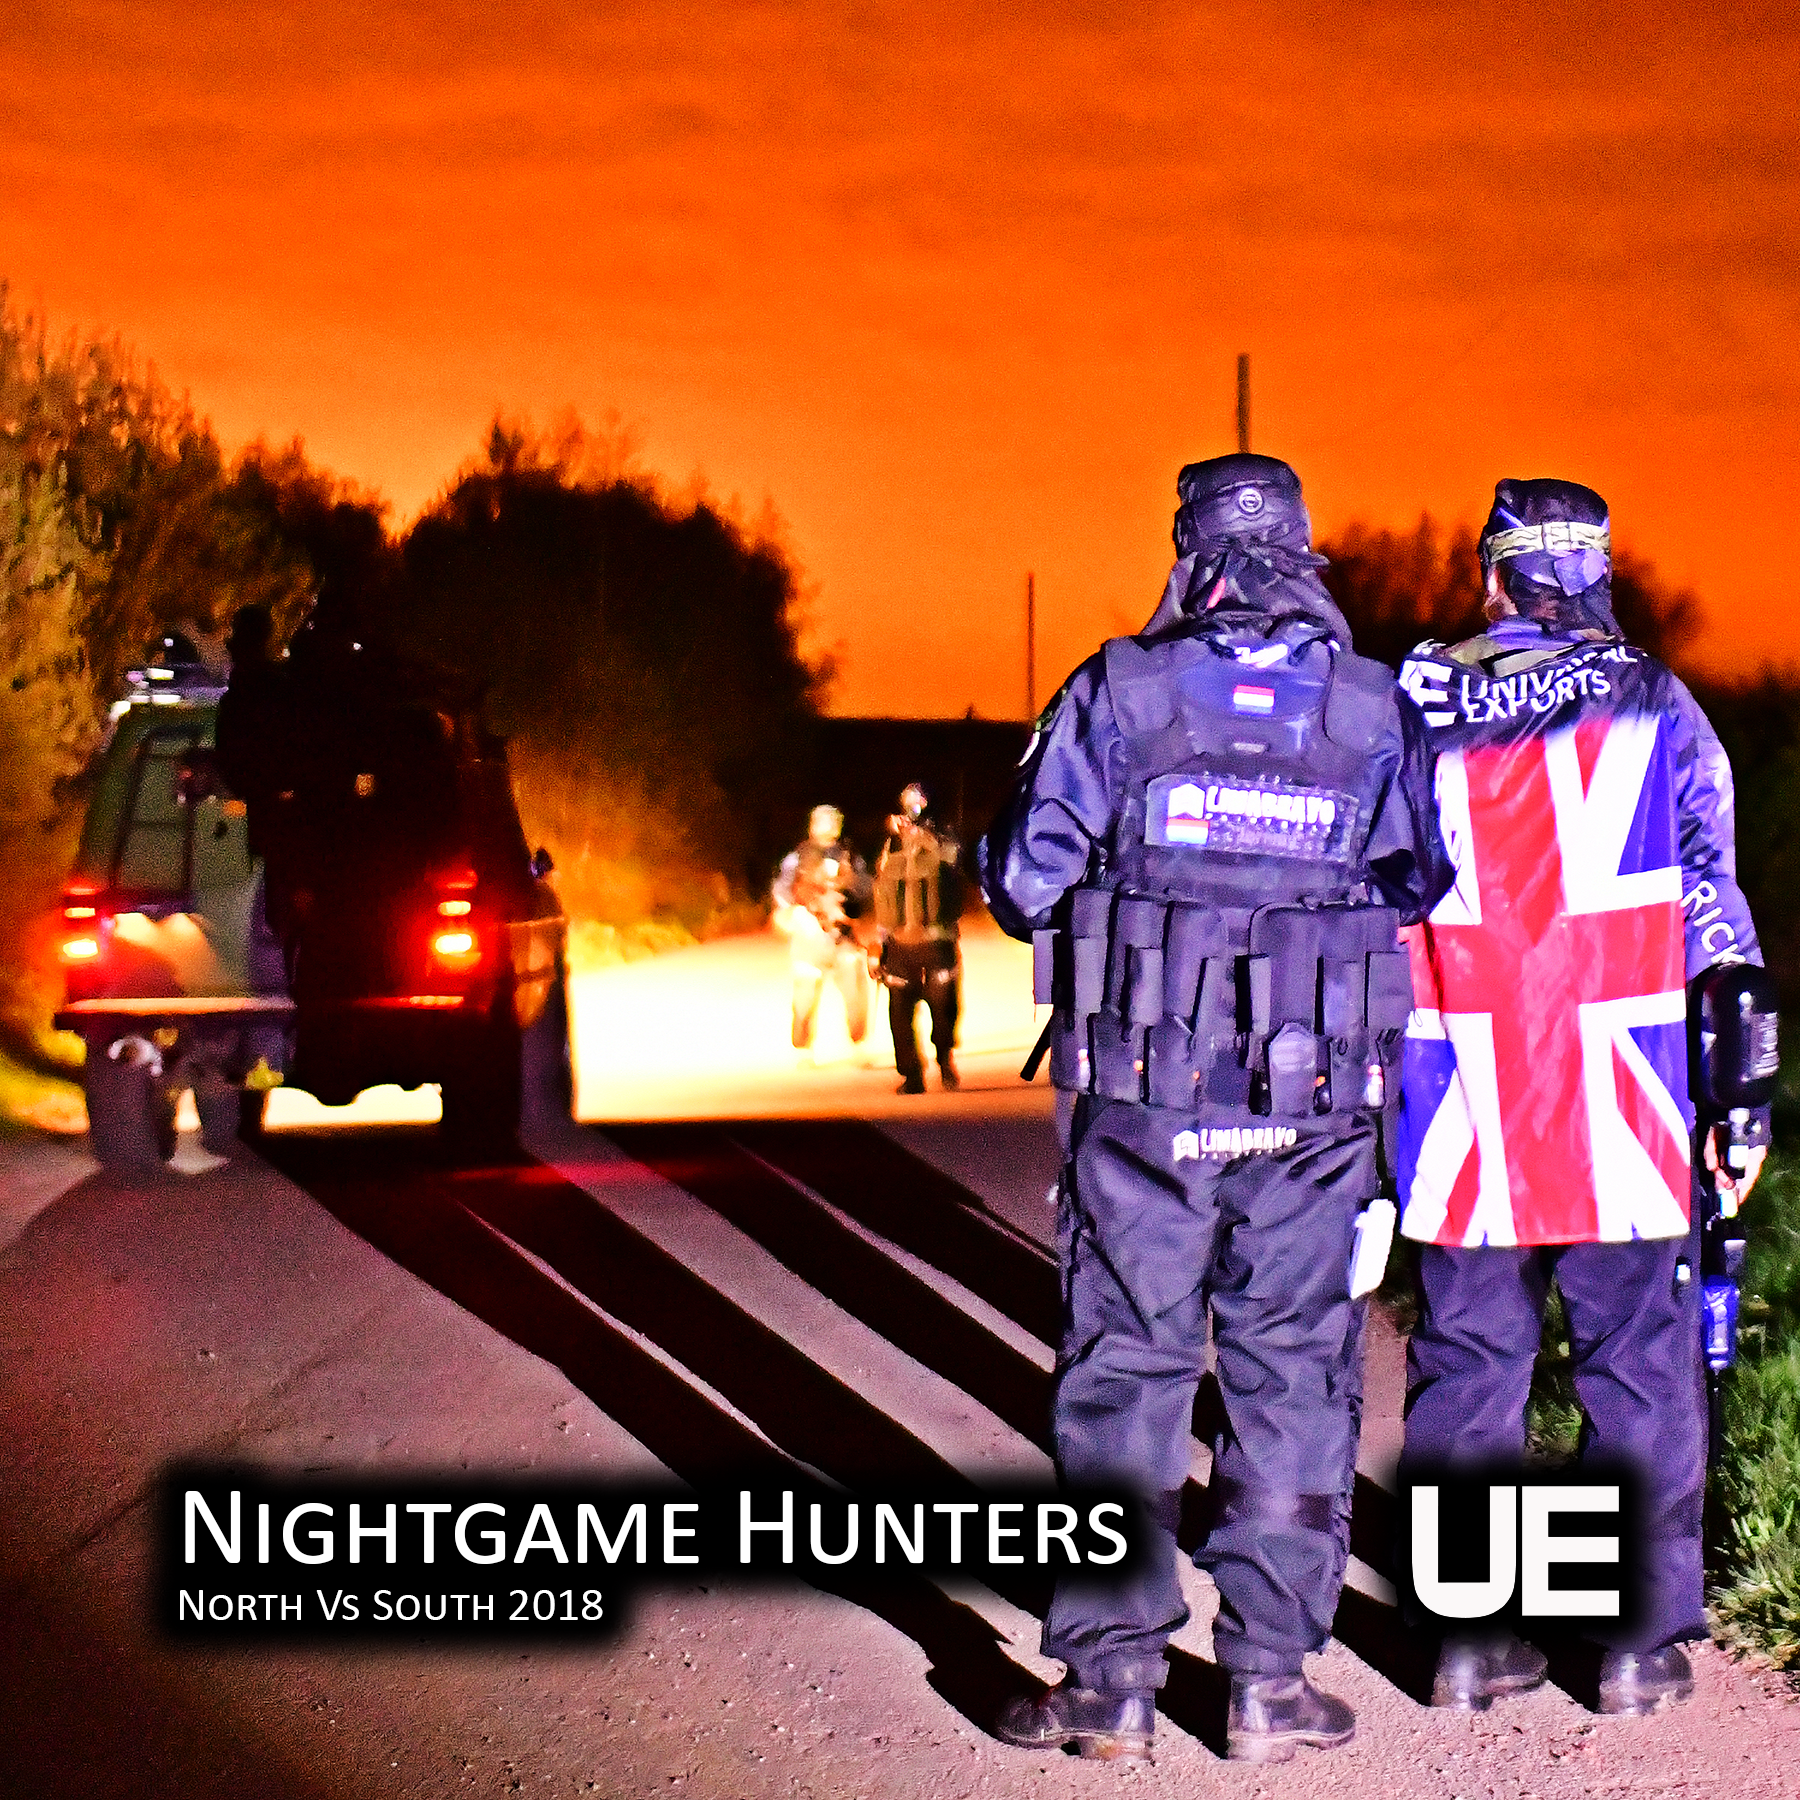 Nightgame Hunters